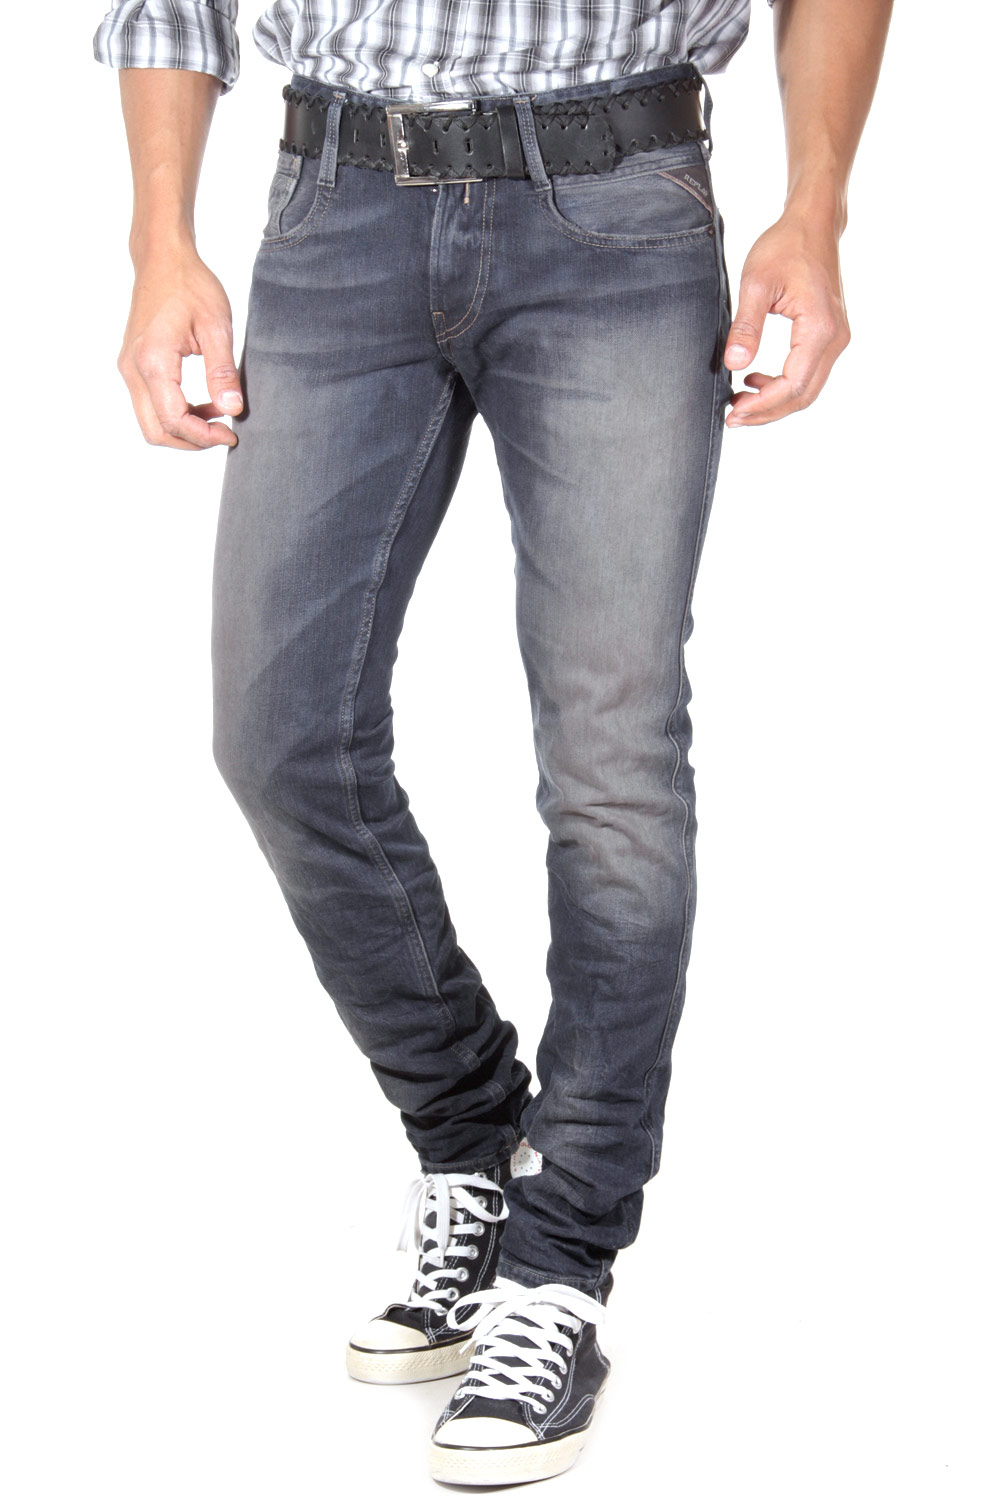 REPLAY ANBASS Stretchjeans slim fit auf oboy.de